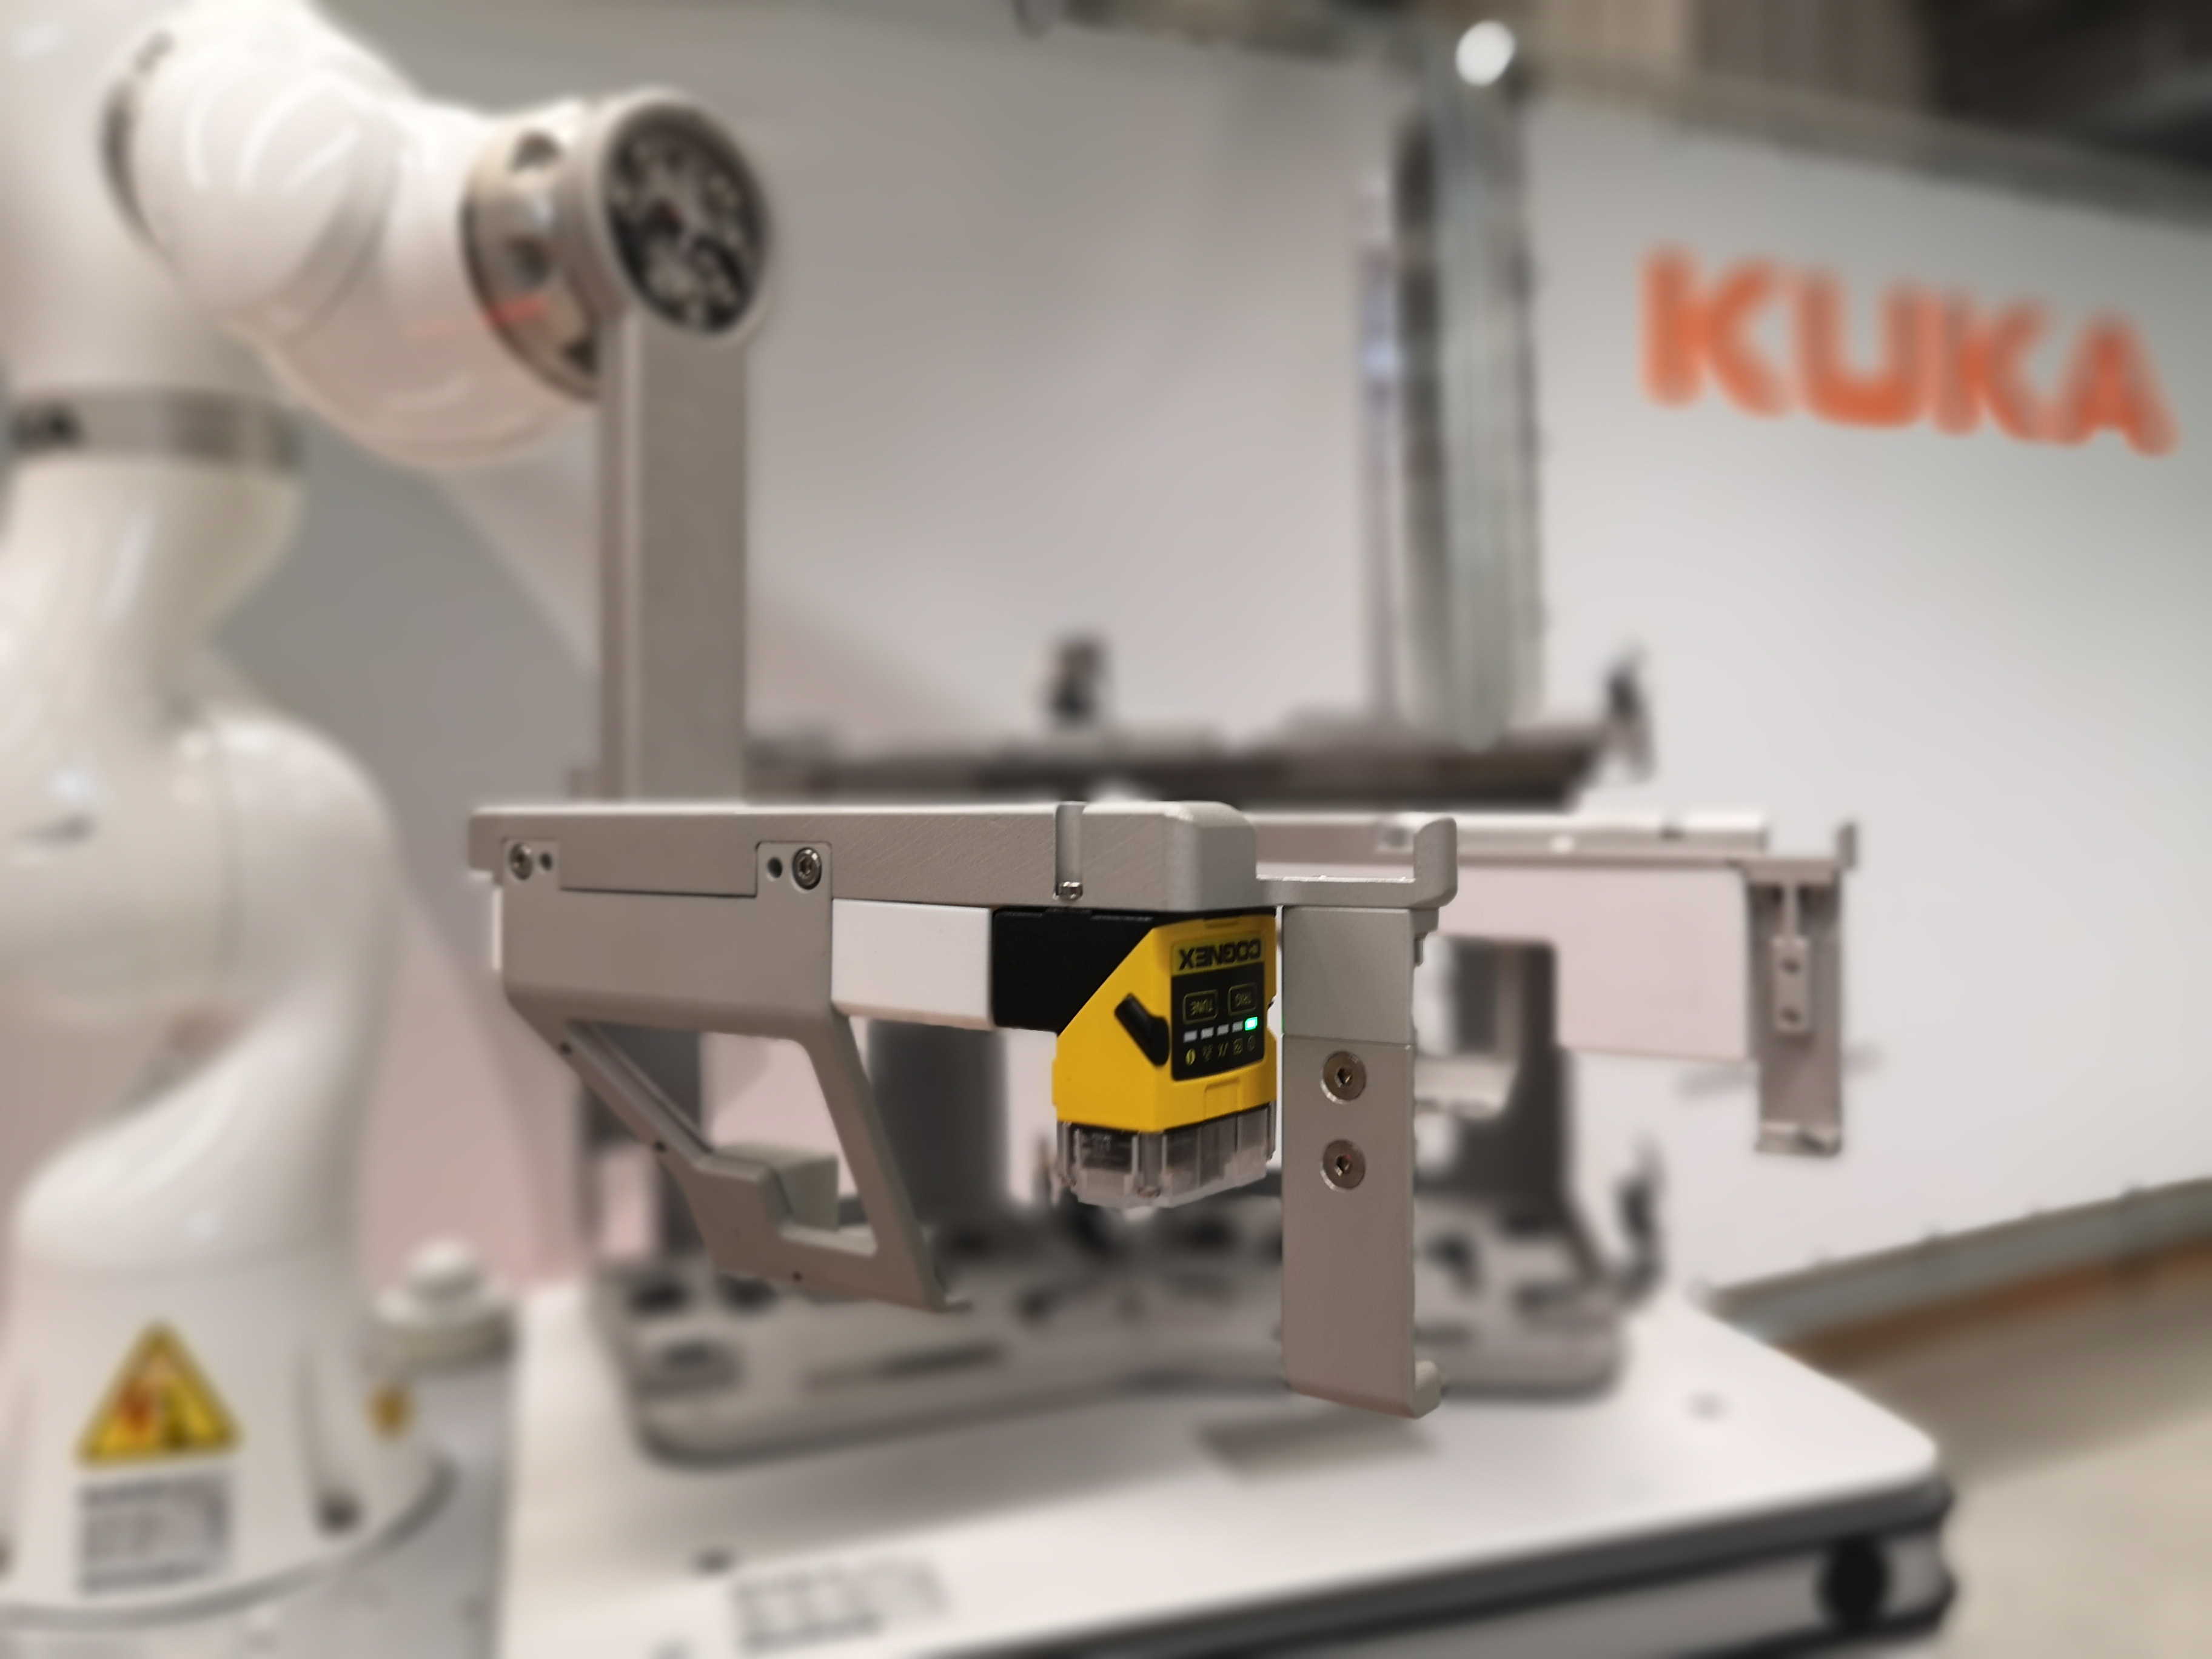 A KUKA robot with a machine vision camera mounted on its arm